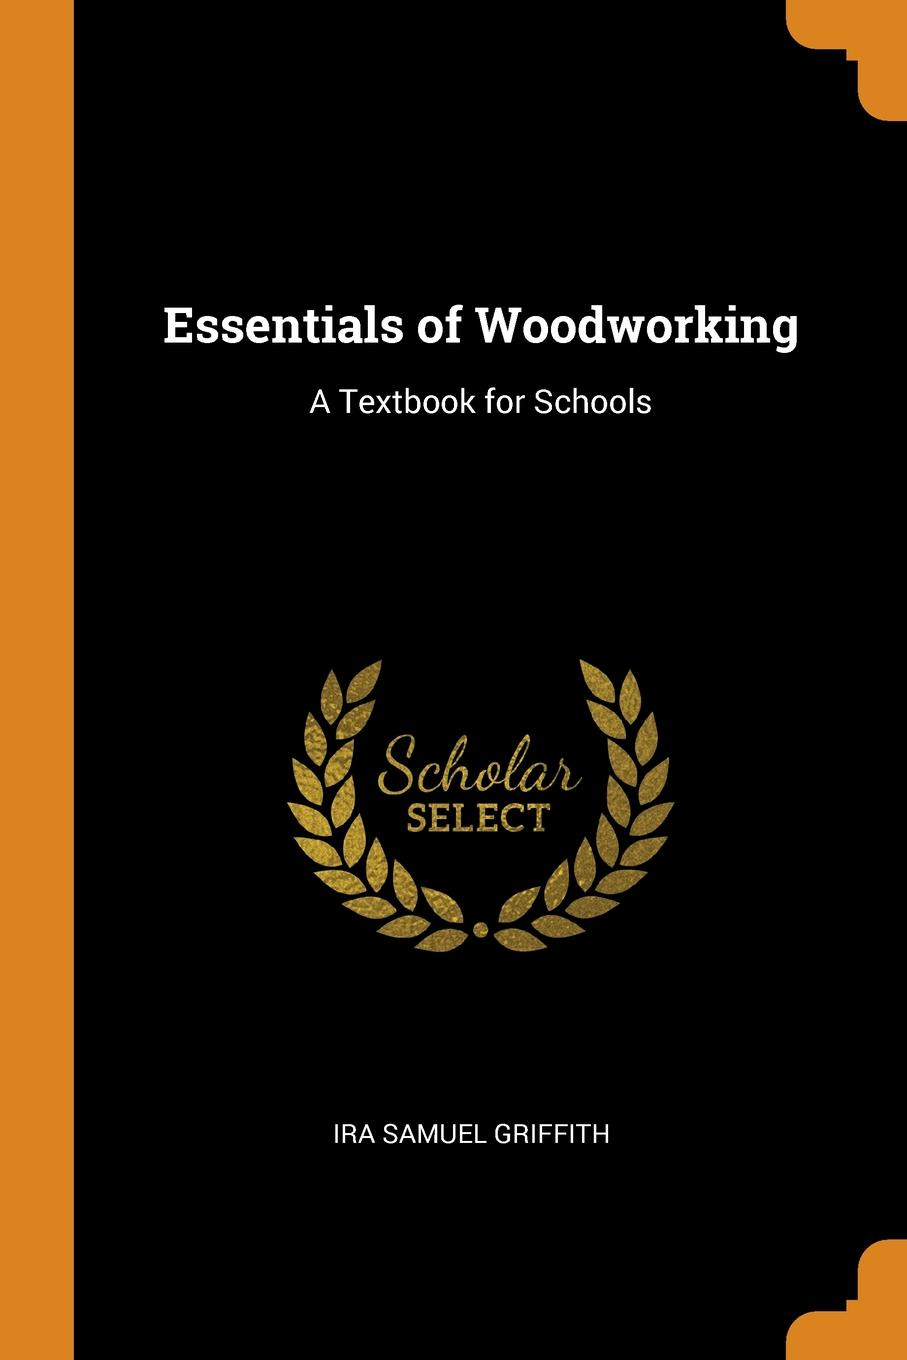 Ira Samuel Griffith. Essentials of Woodworking. A Textbook for Schools